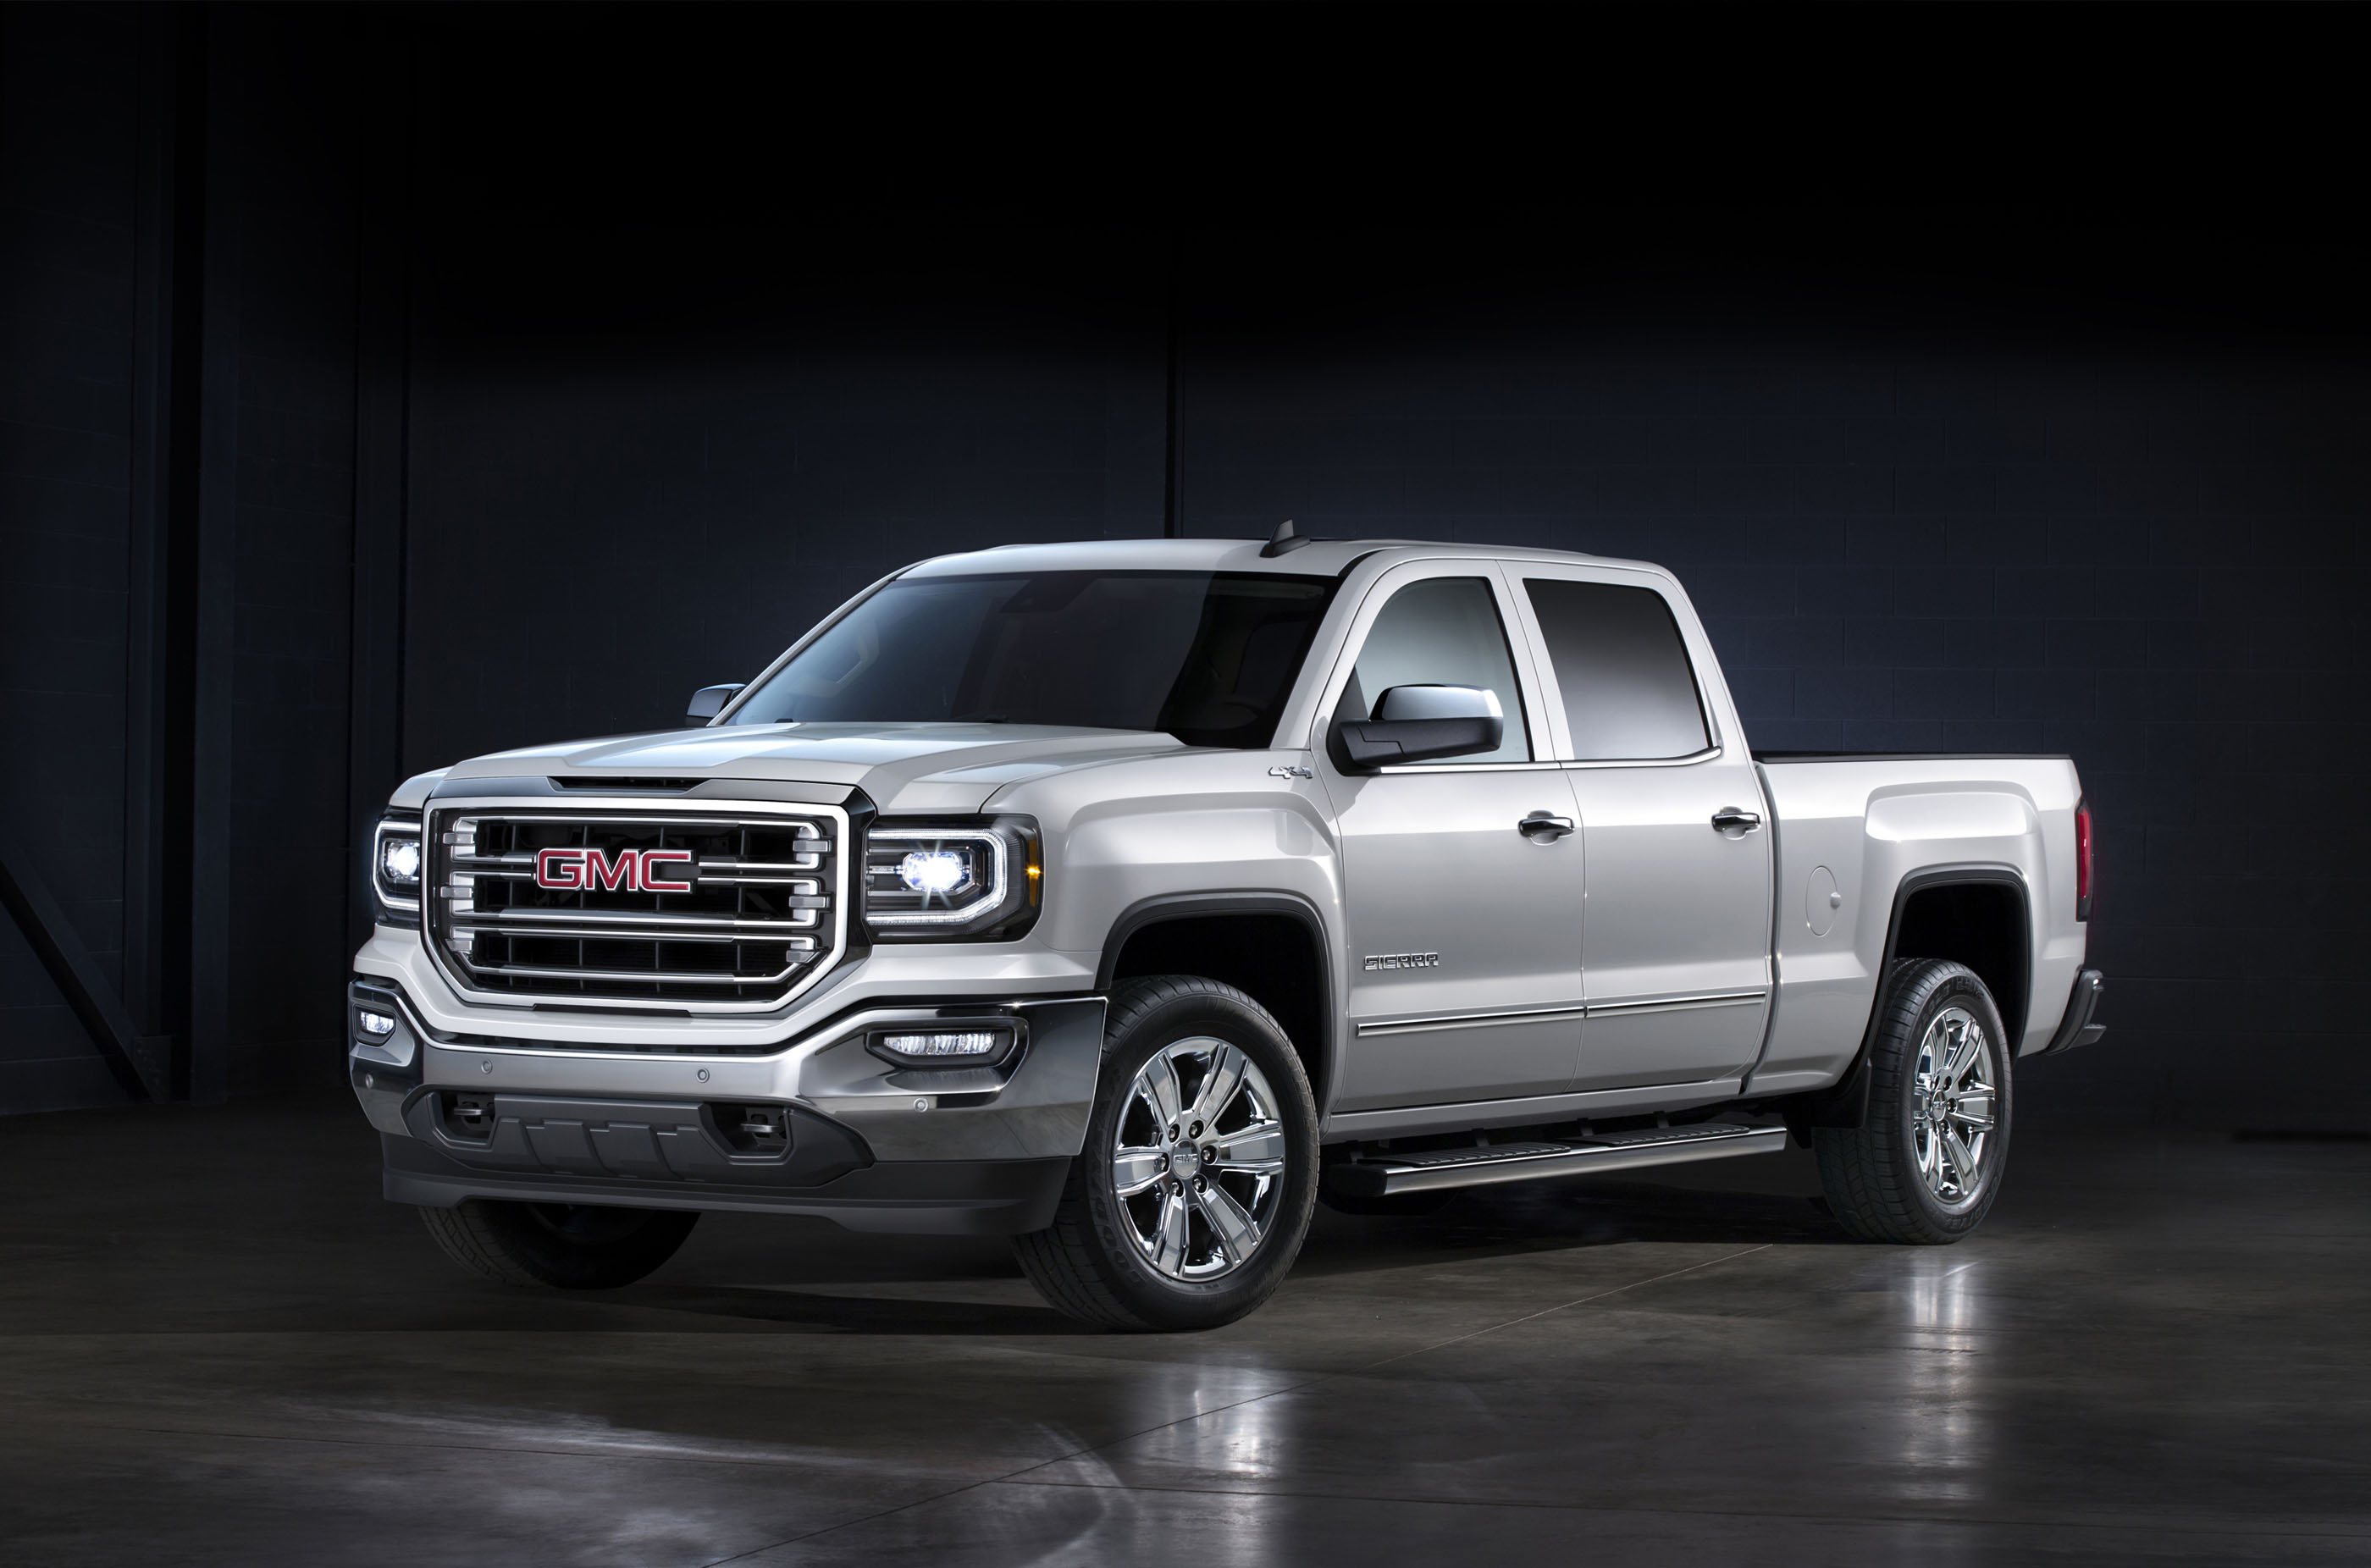 Gmc Canada Pickup Trucks Suvs And Crossovers -